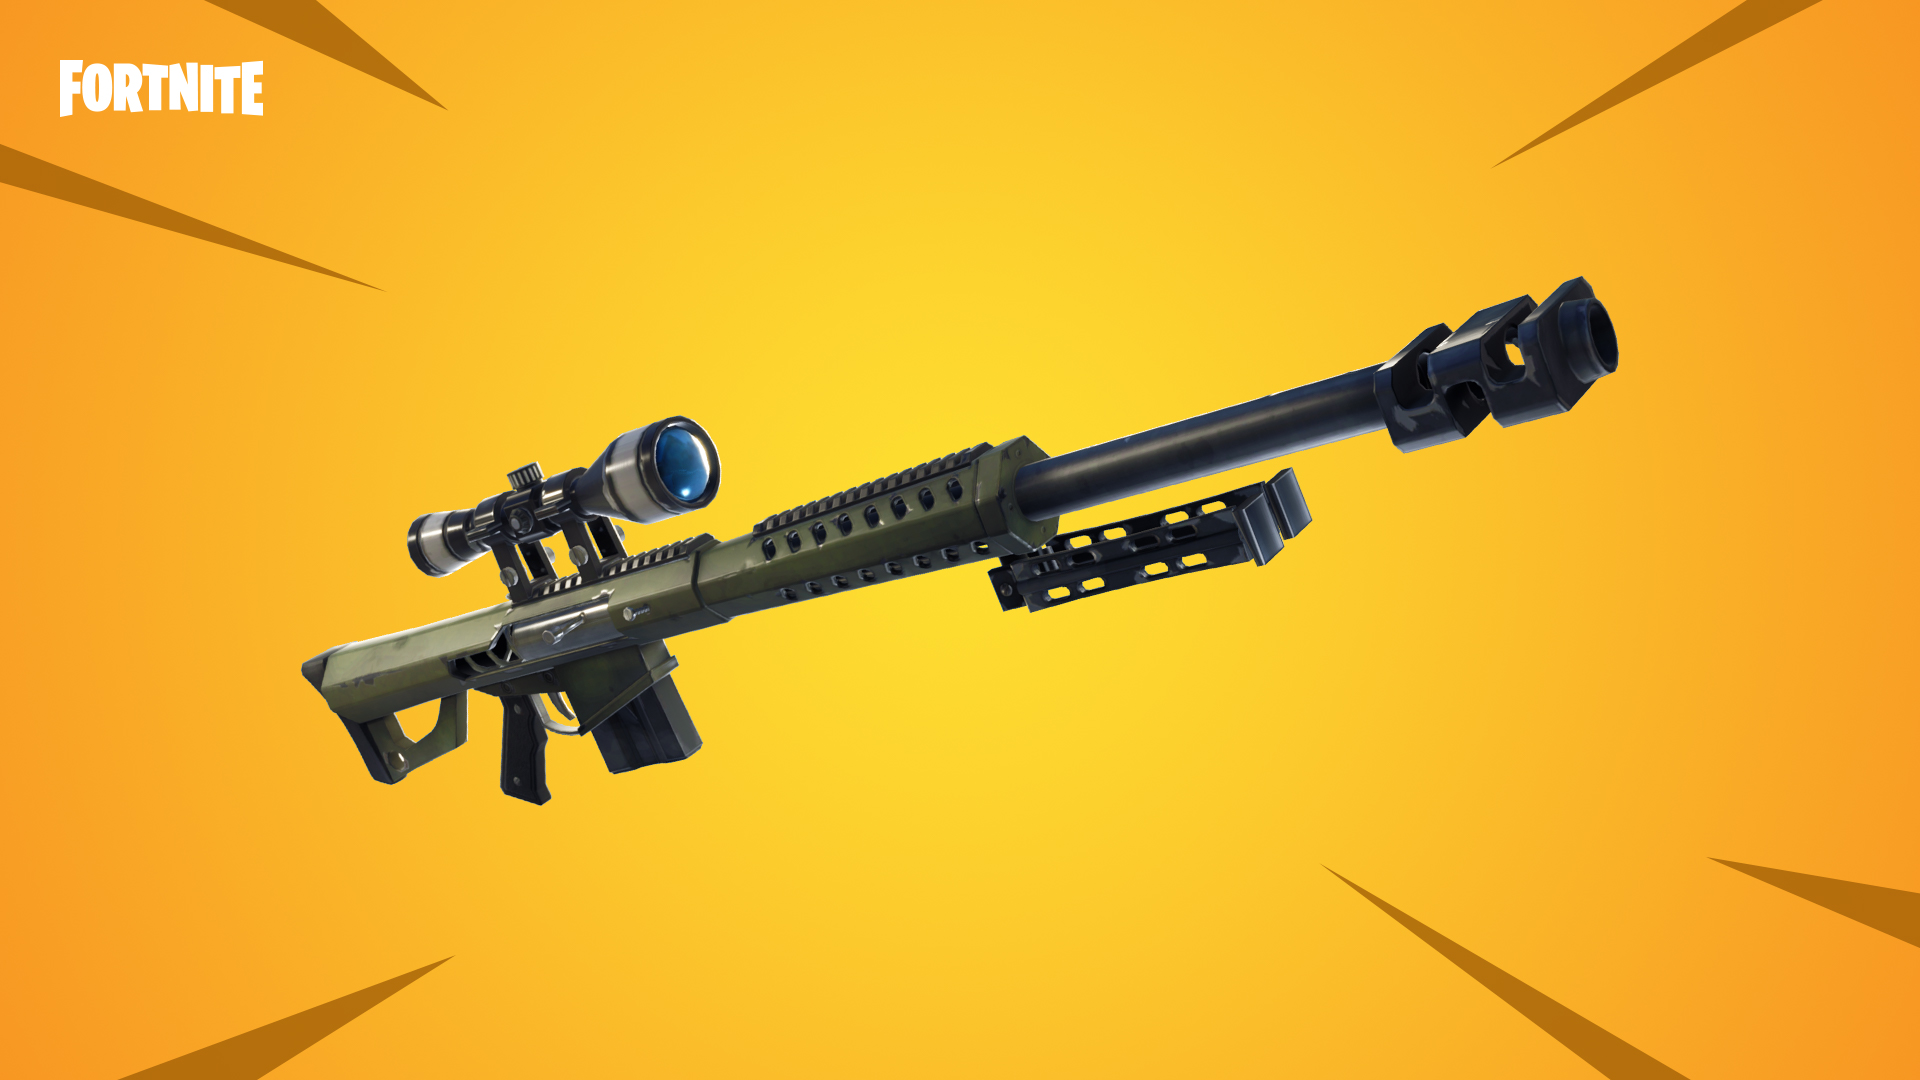 Fortnite V5 21 Patch Notes New Heavy Sniper Rifle Soaring 50 S